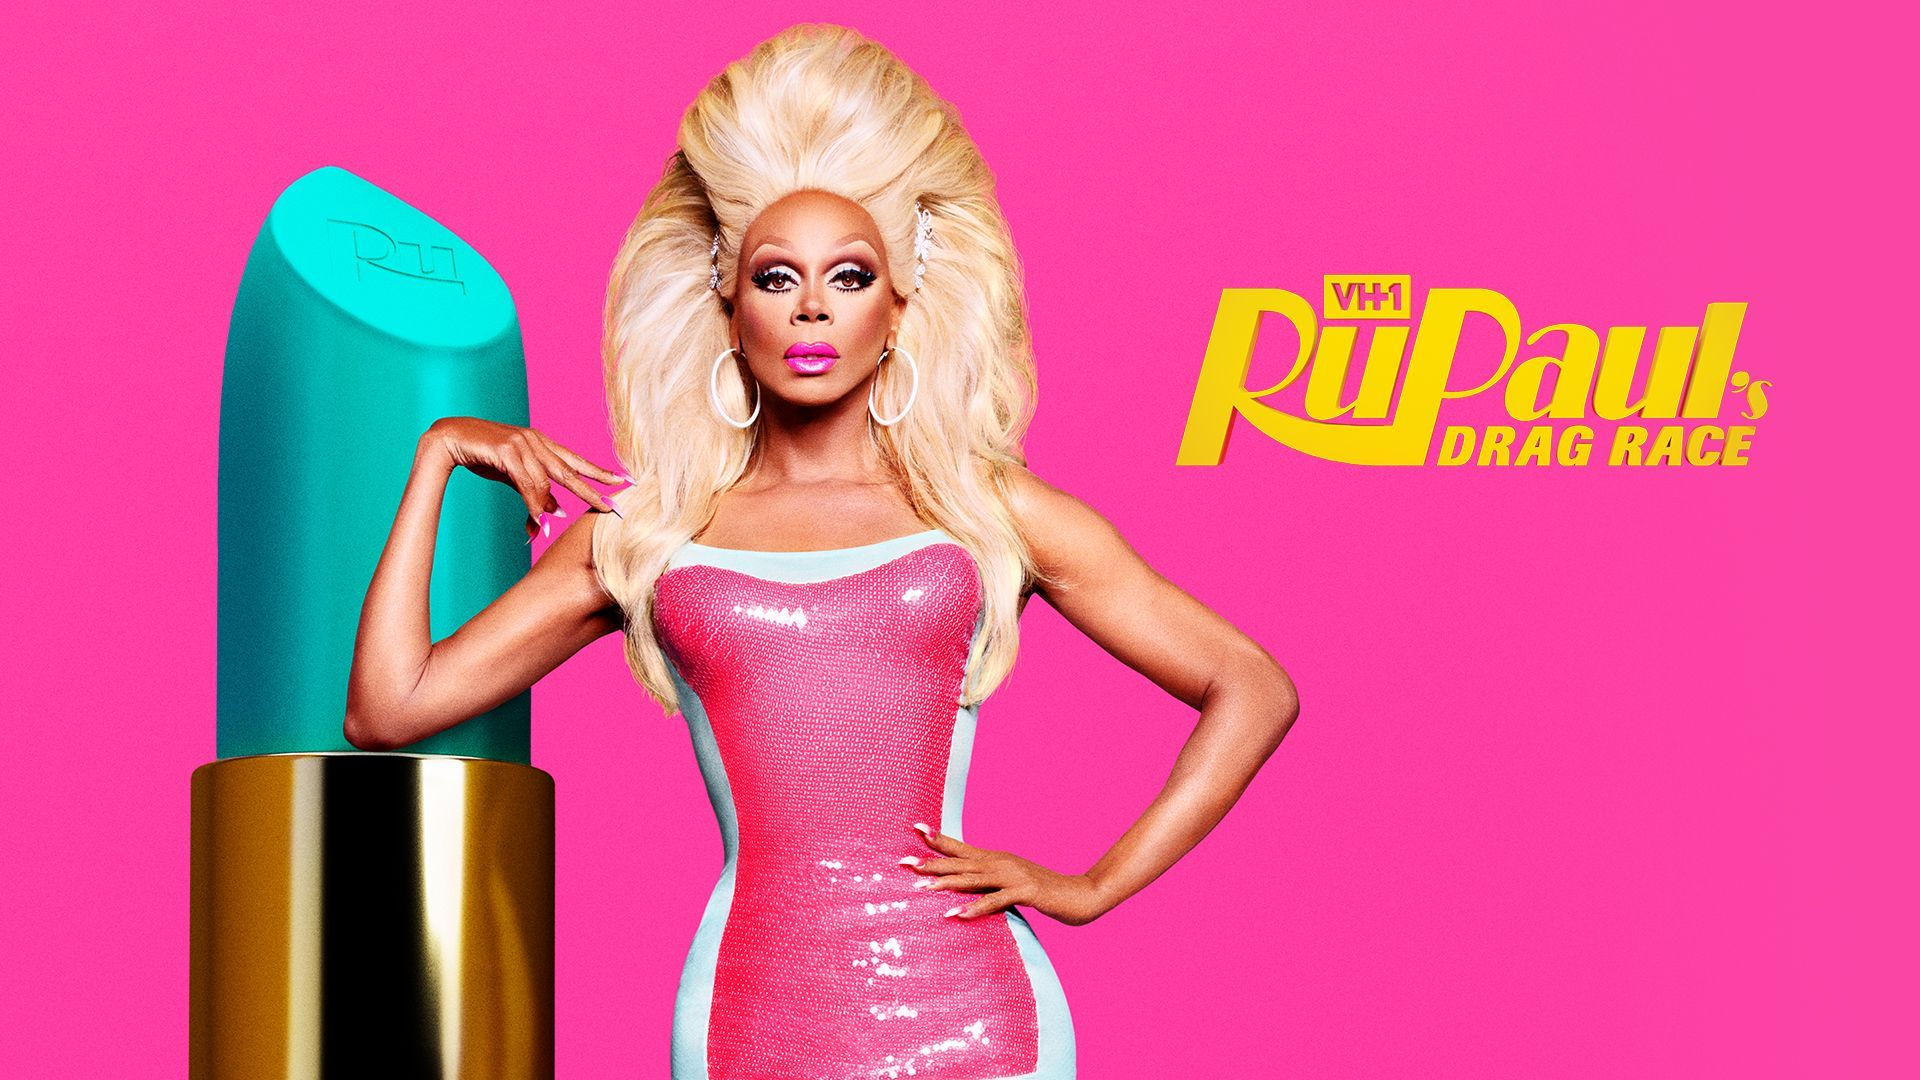 'RuPaul's Drag Race' Season 11: What's Next For Nina West After Elimination?